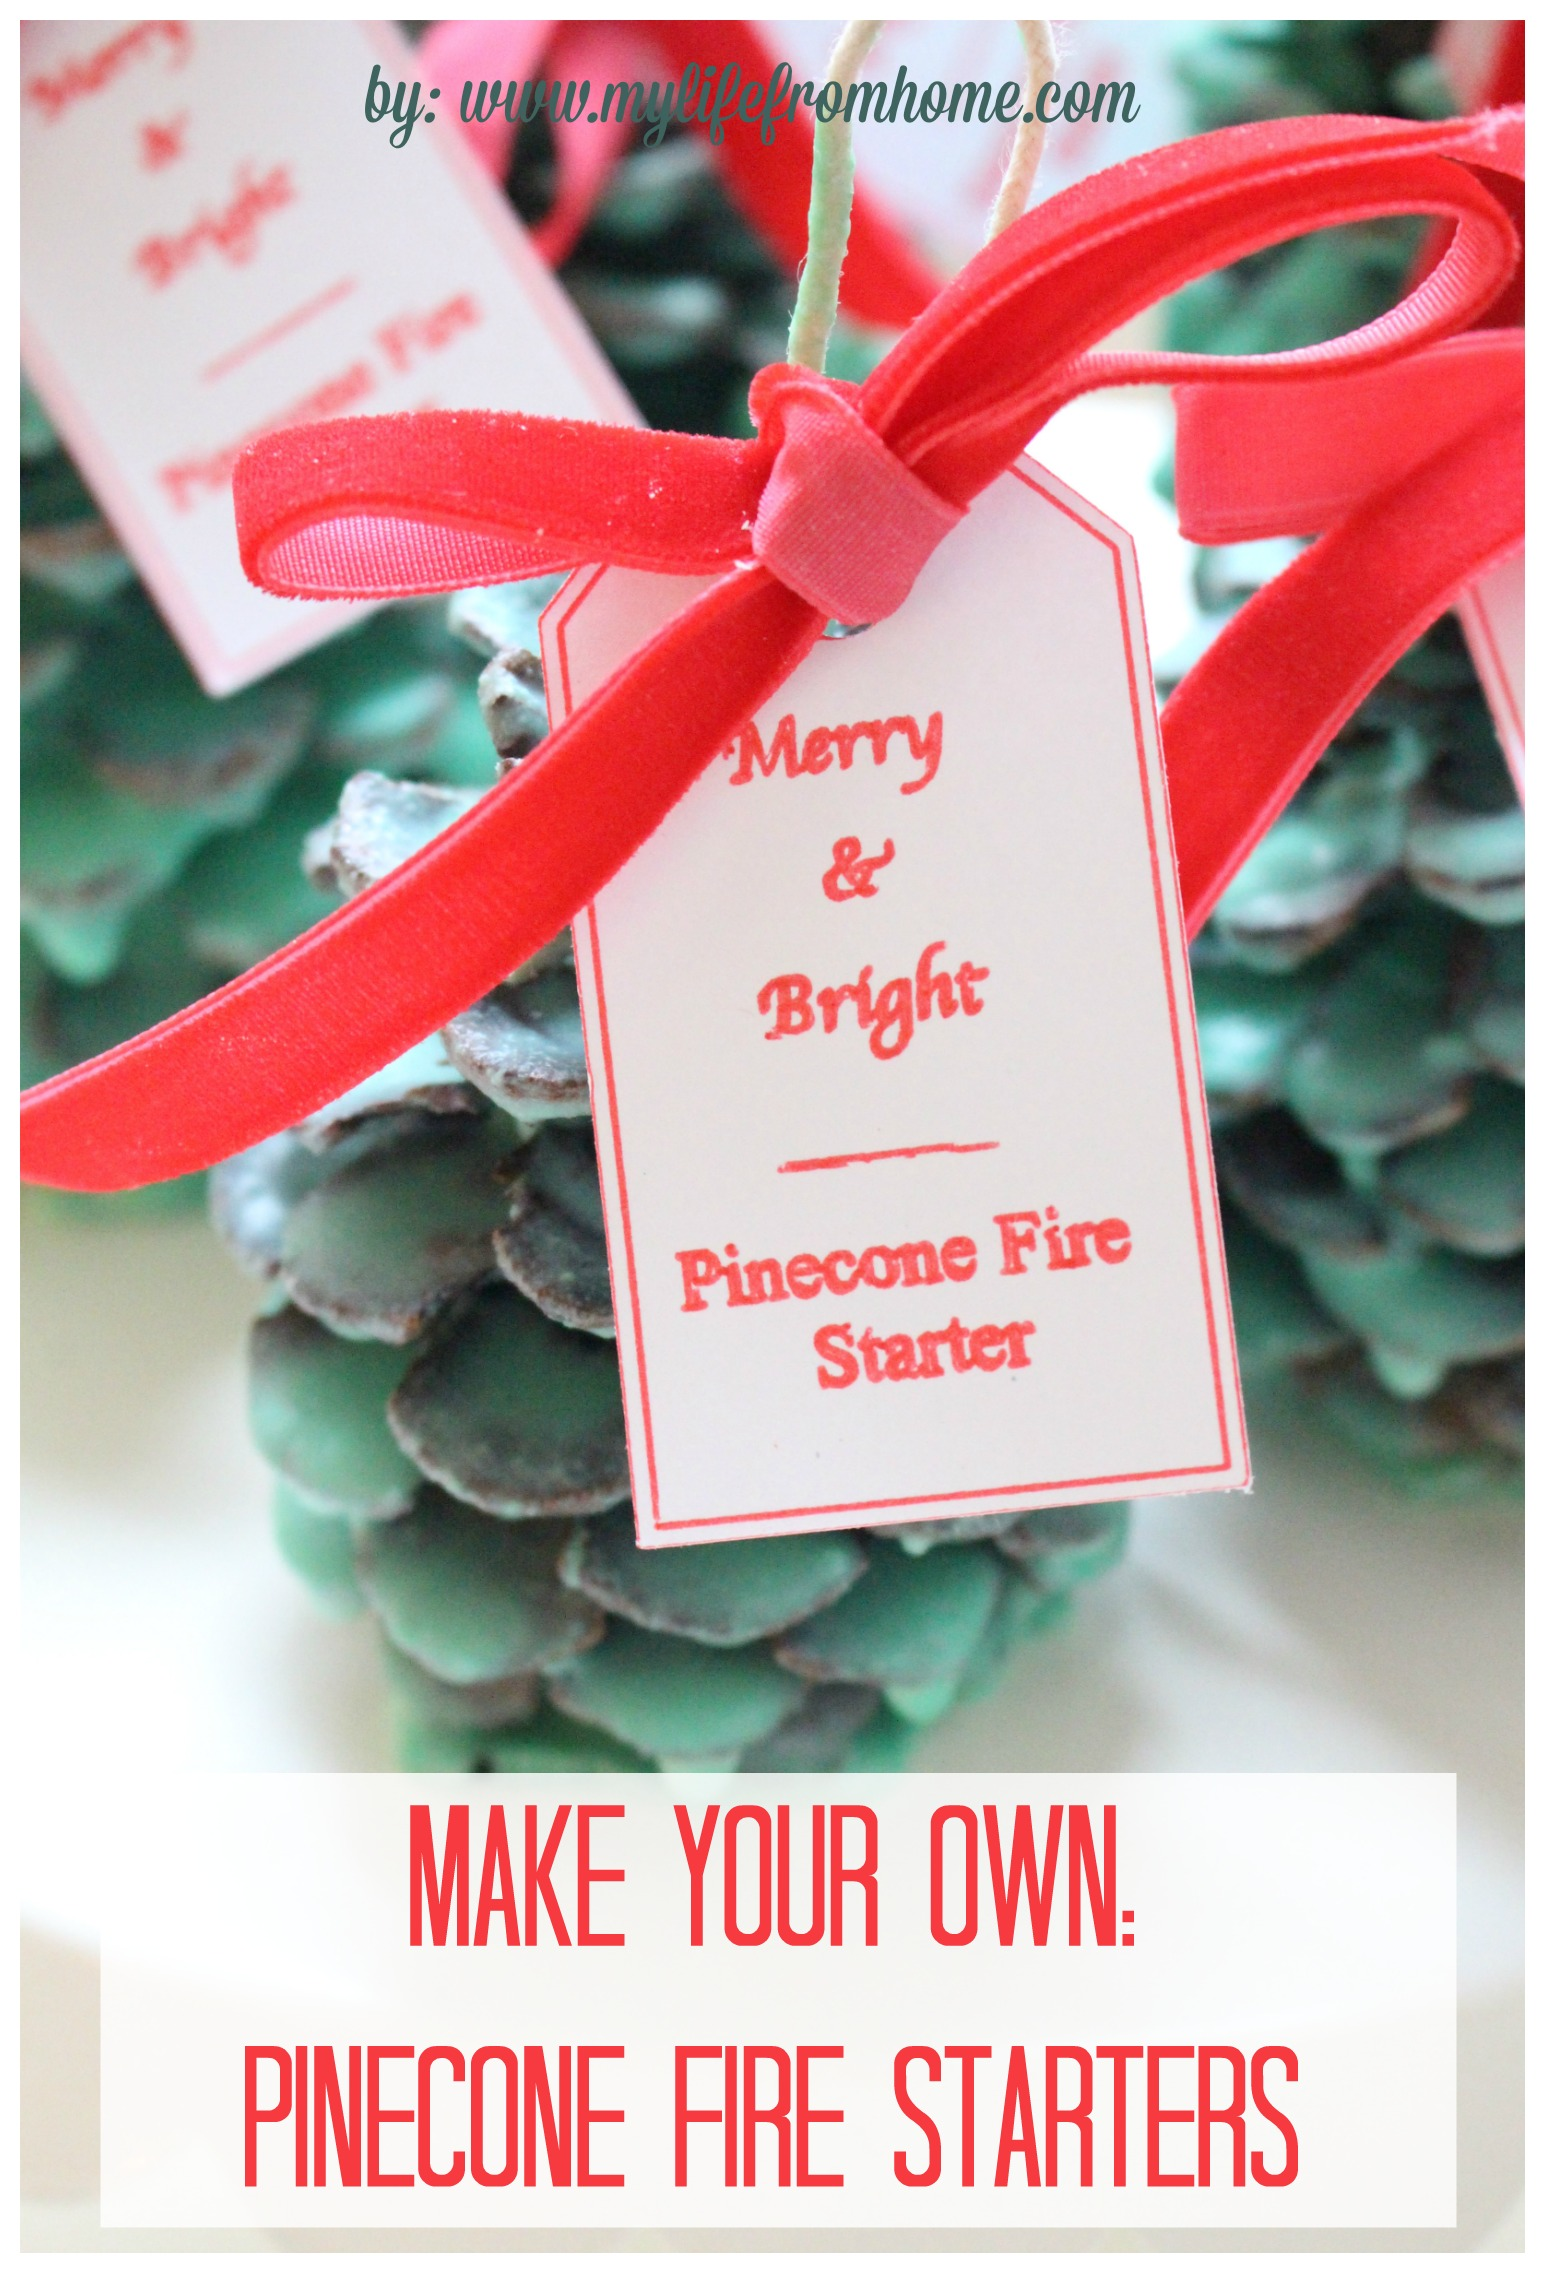 make-your-own-pinecone-fire-starters-diy-fire-starters-pinecones-crafts-with-pinecones-christmas-gifts-merry-bright-fire-starter-candle-wax-projects